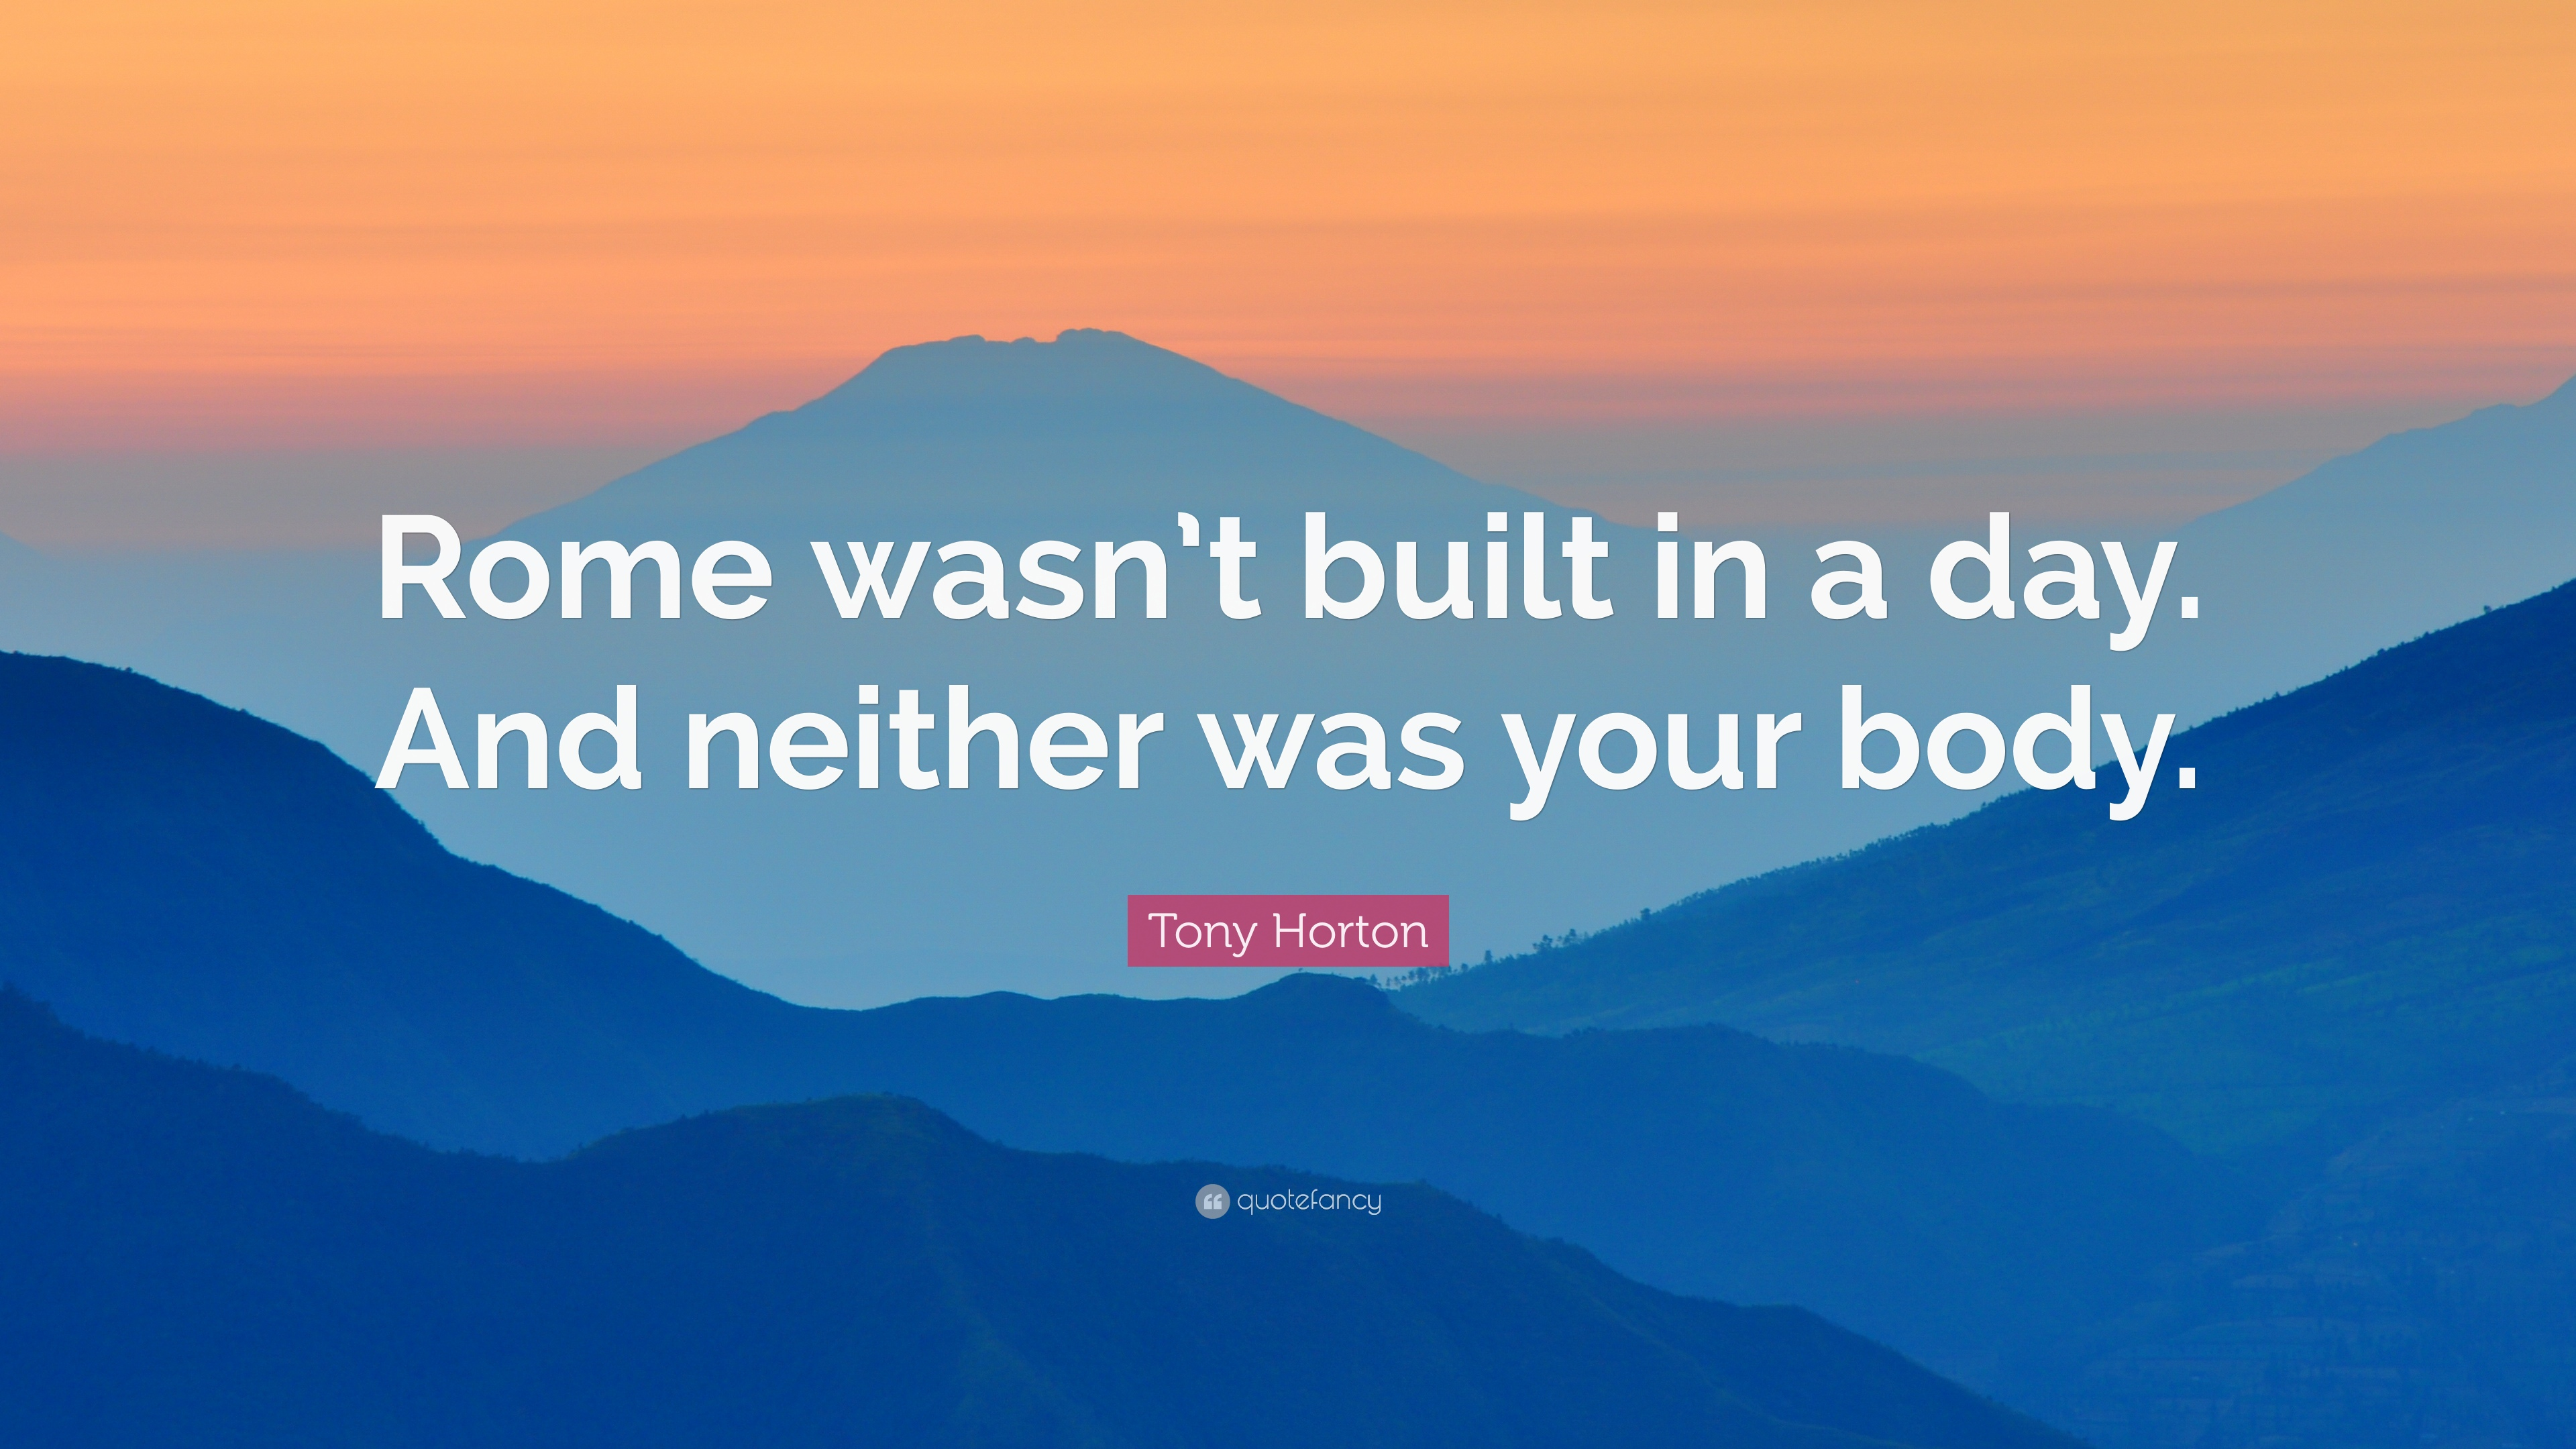 Tony Horton Quote Rome Wasn T Built In A Day And Neither Was Your Body 12 Wallpapers Quotefancy